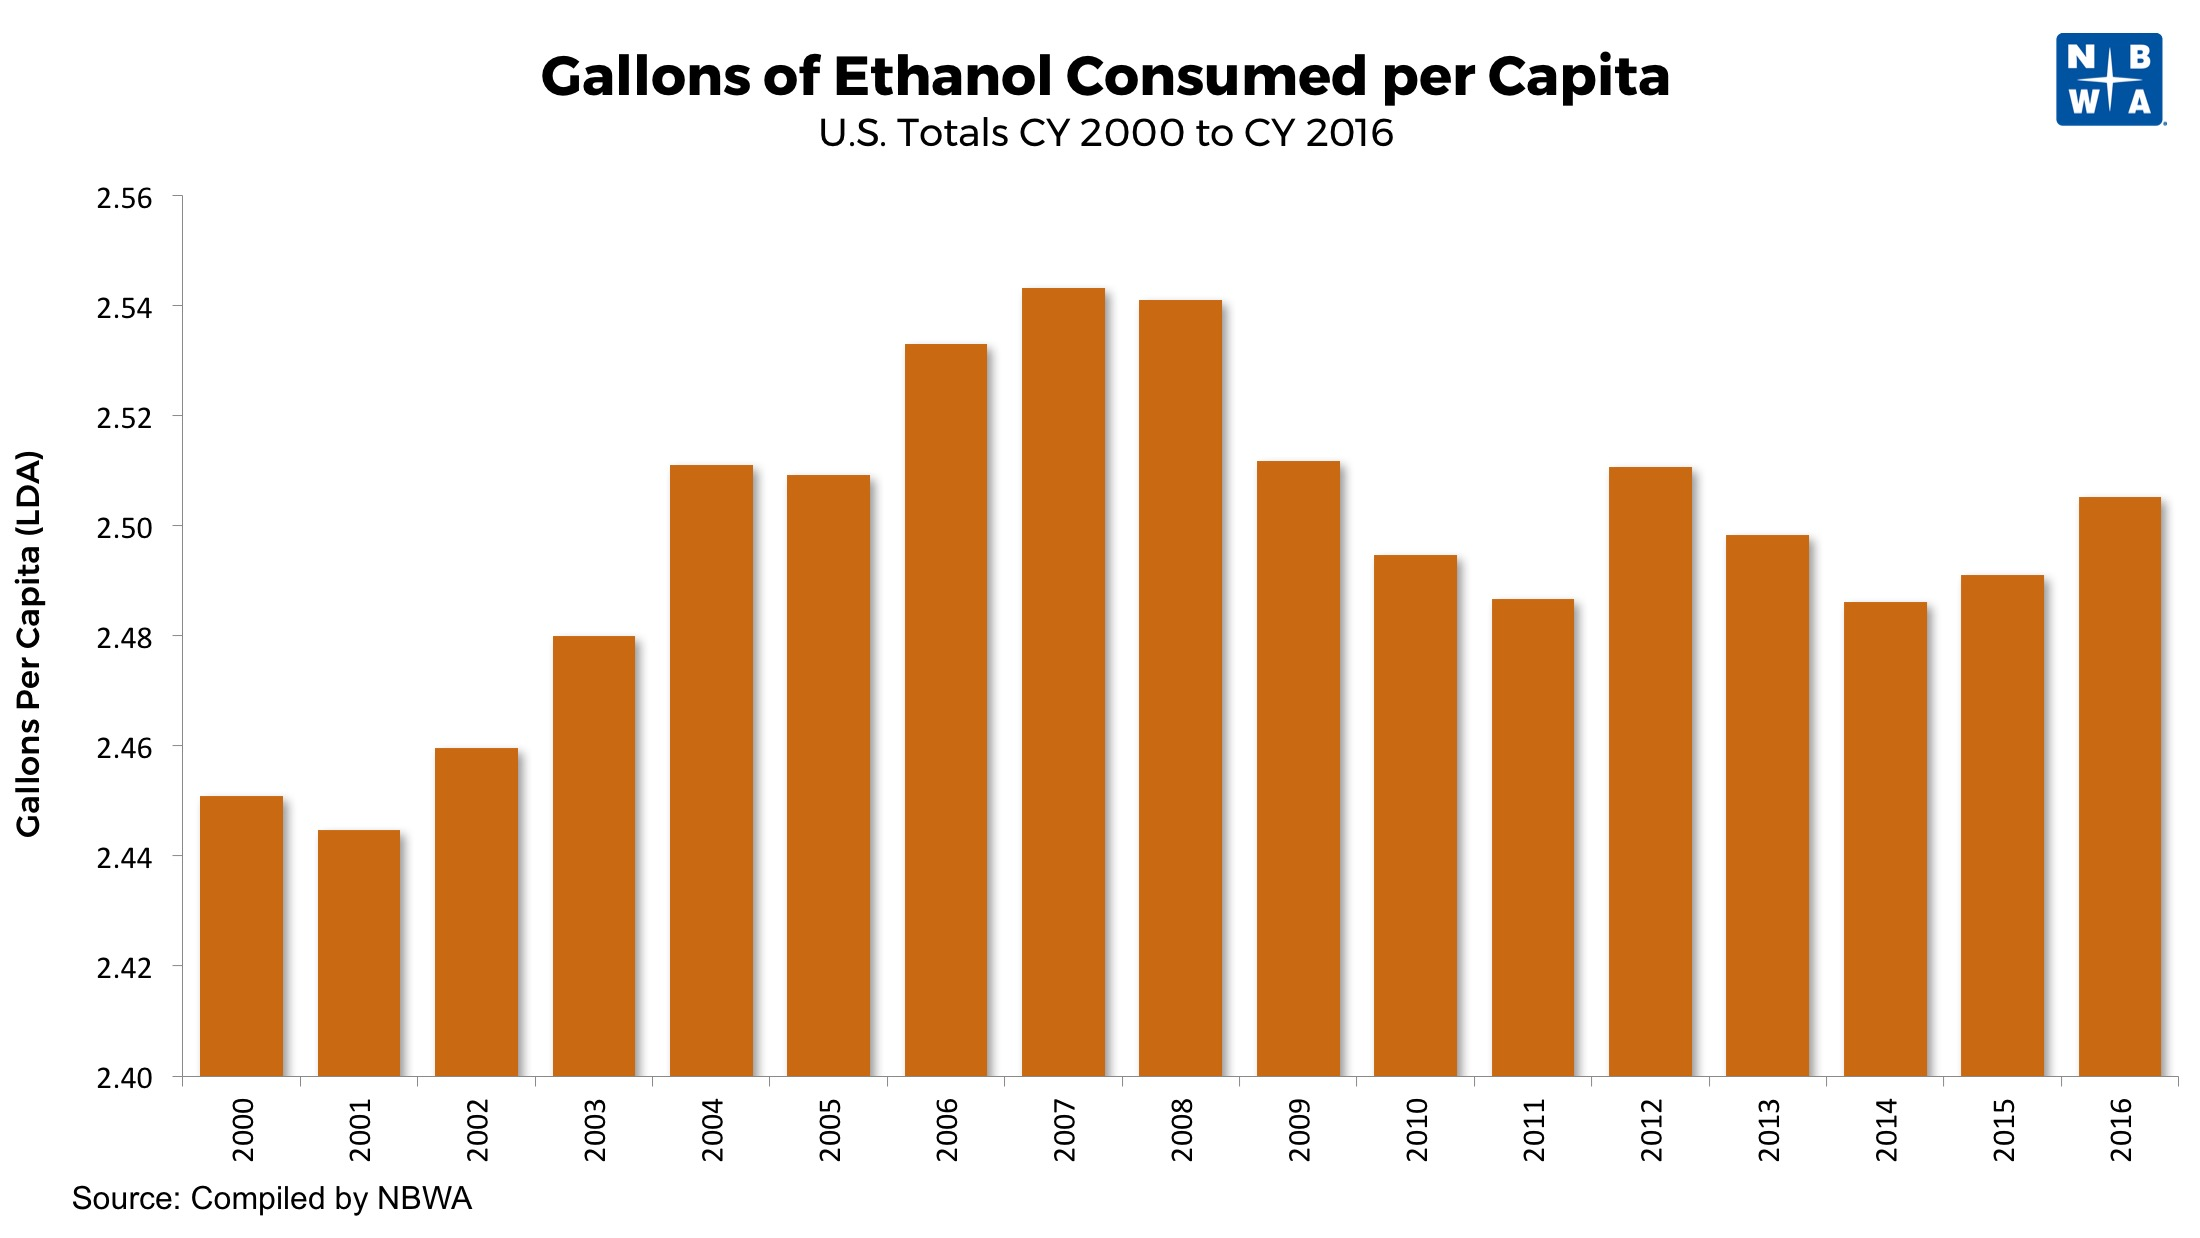 Gallons of Alcohol Consumed Per Capita 2000 to 2016